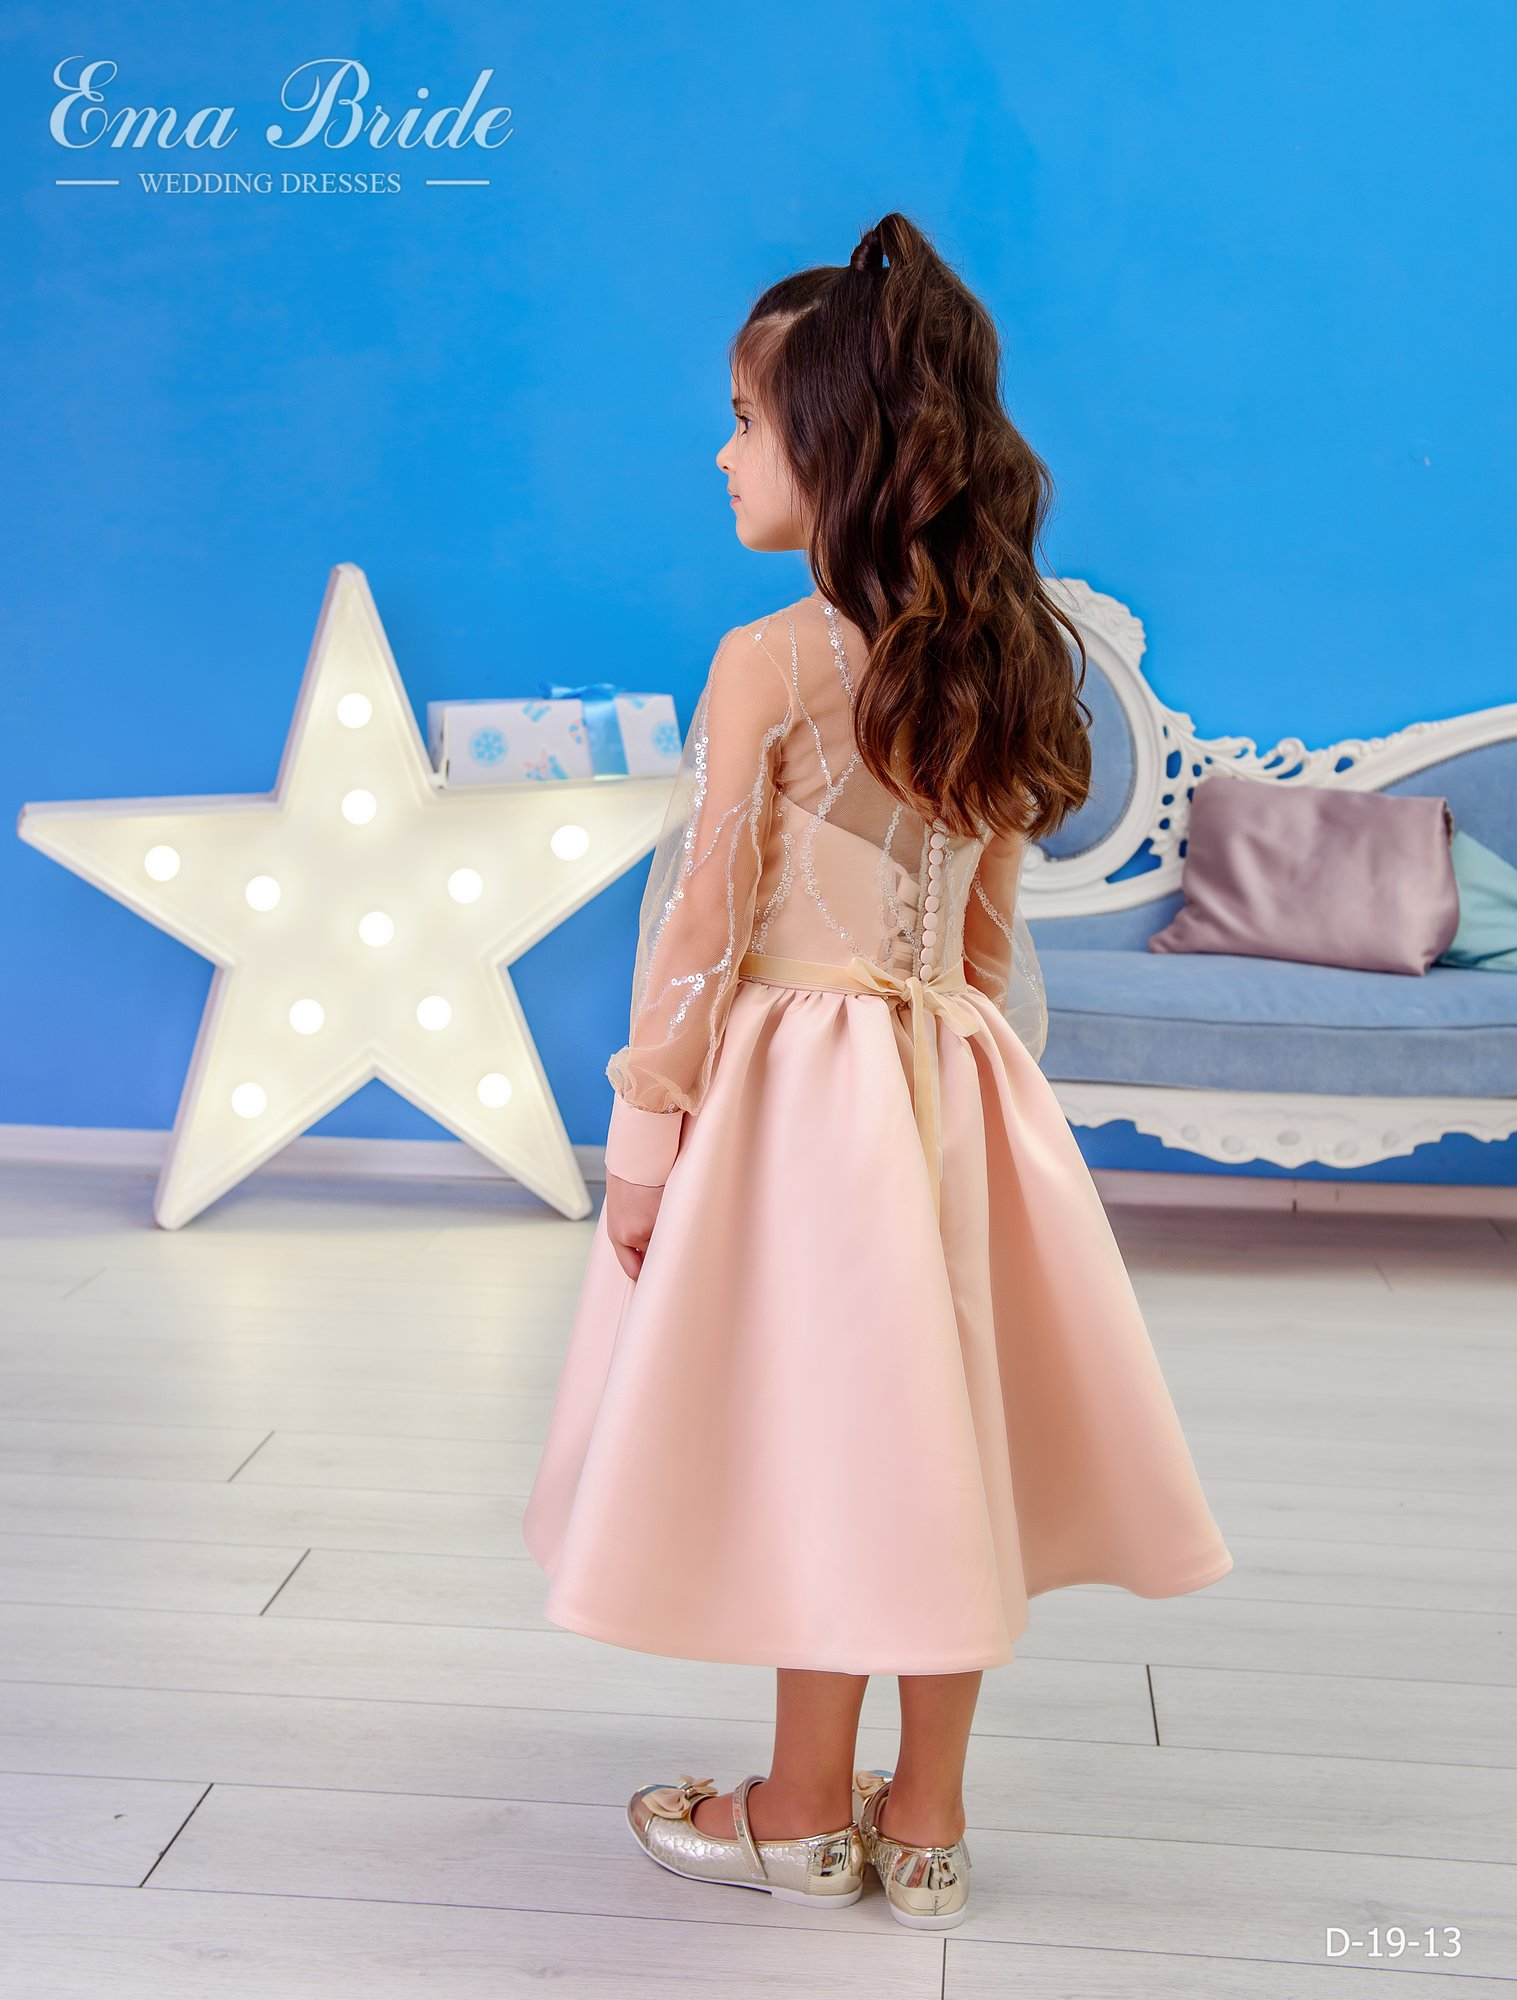 Children's dress by EmaBride D-19-13 2019-3